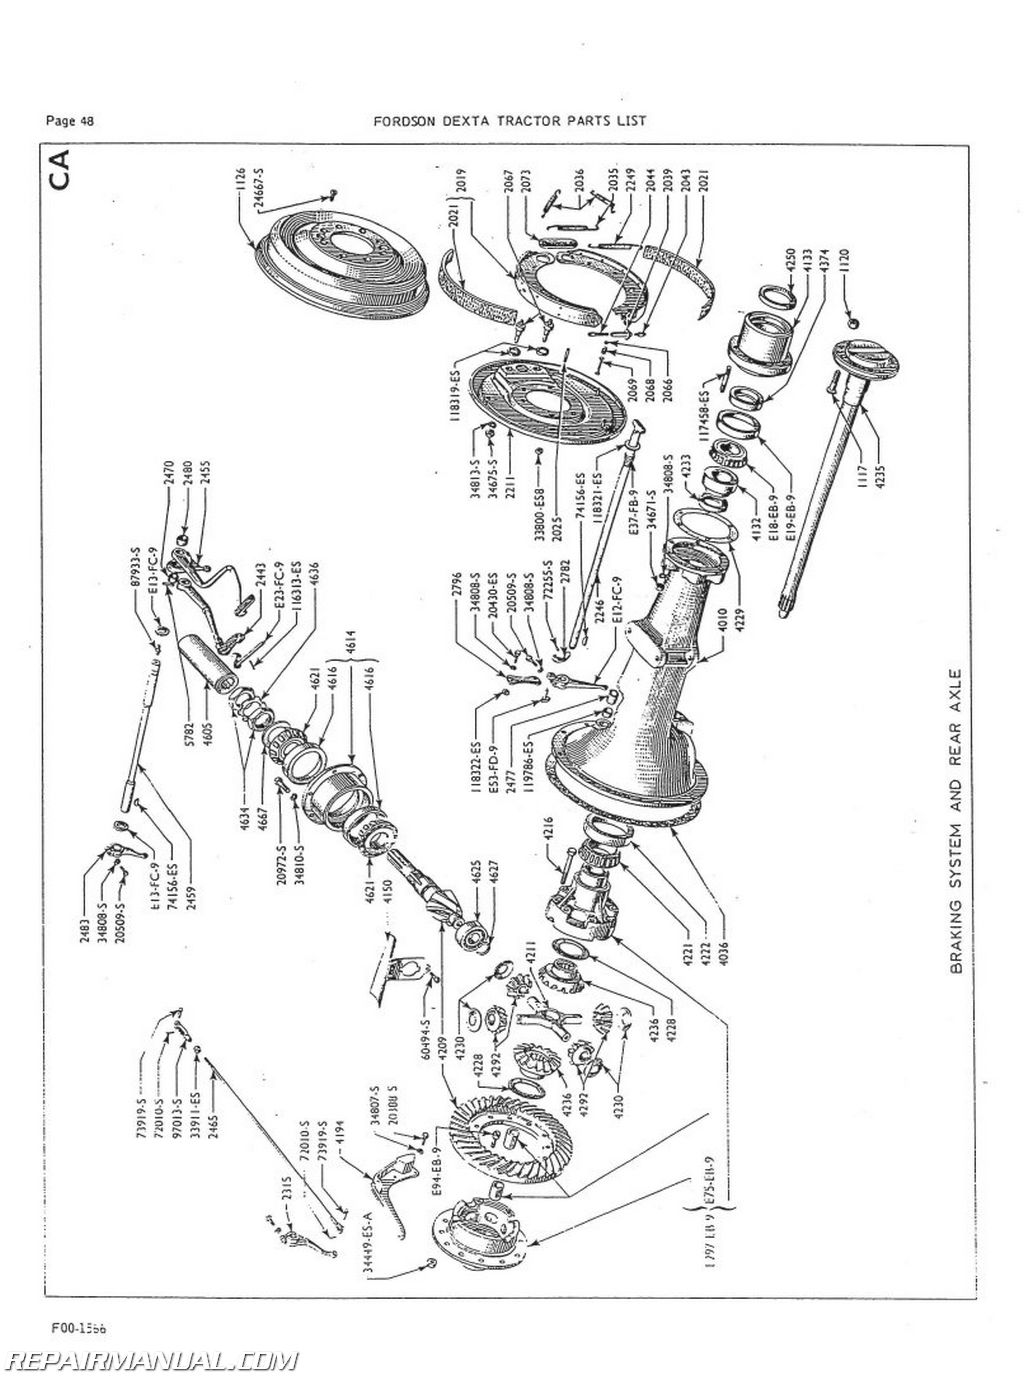 Fordson Dexta And Super Dexta Factory Parts Manual Js Fo P Dexta on ford 5000 tractor parts diagram